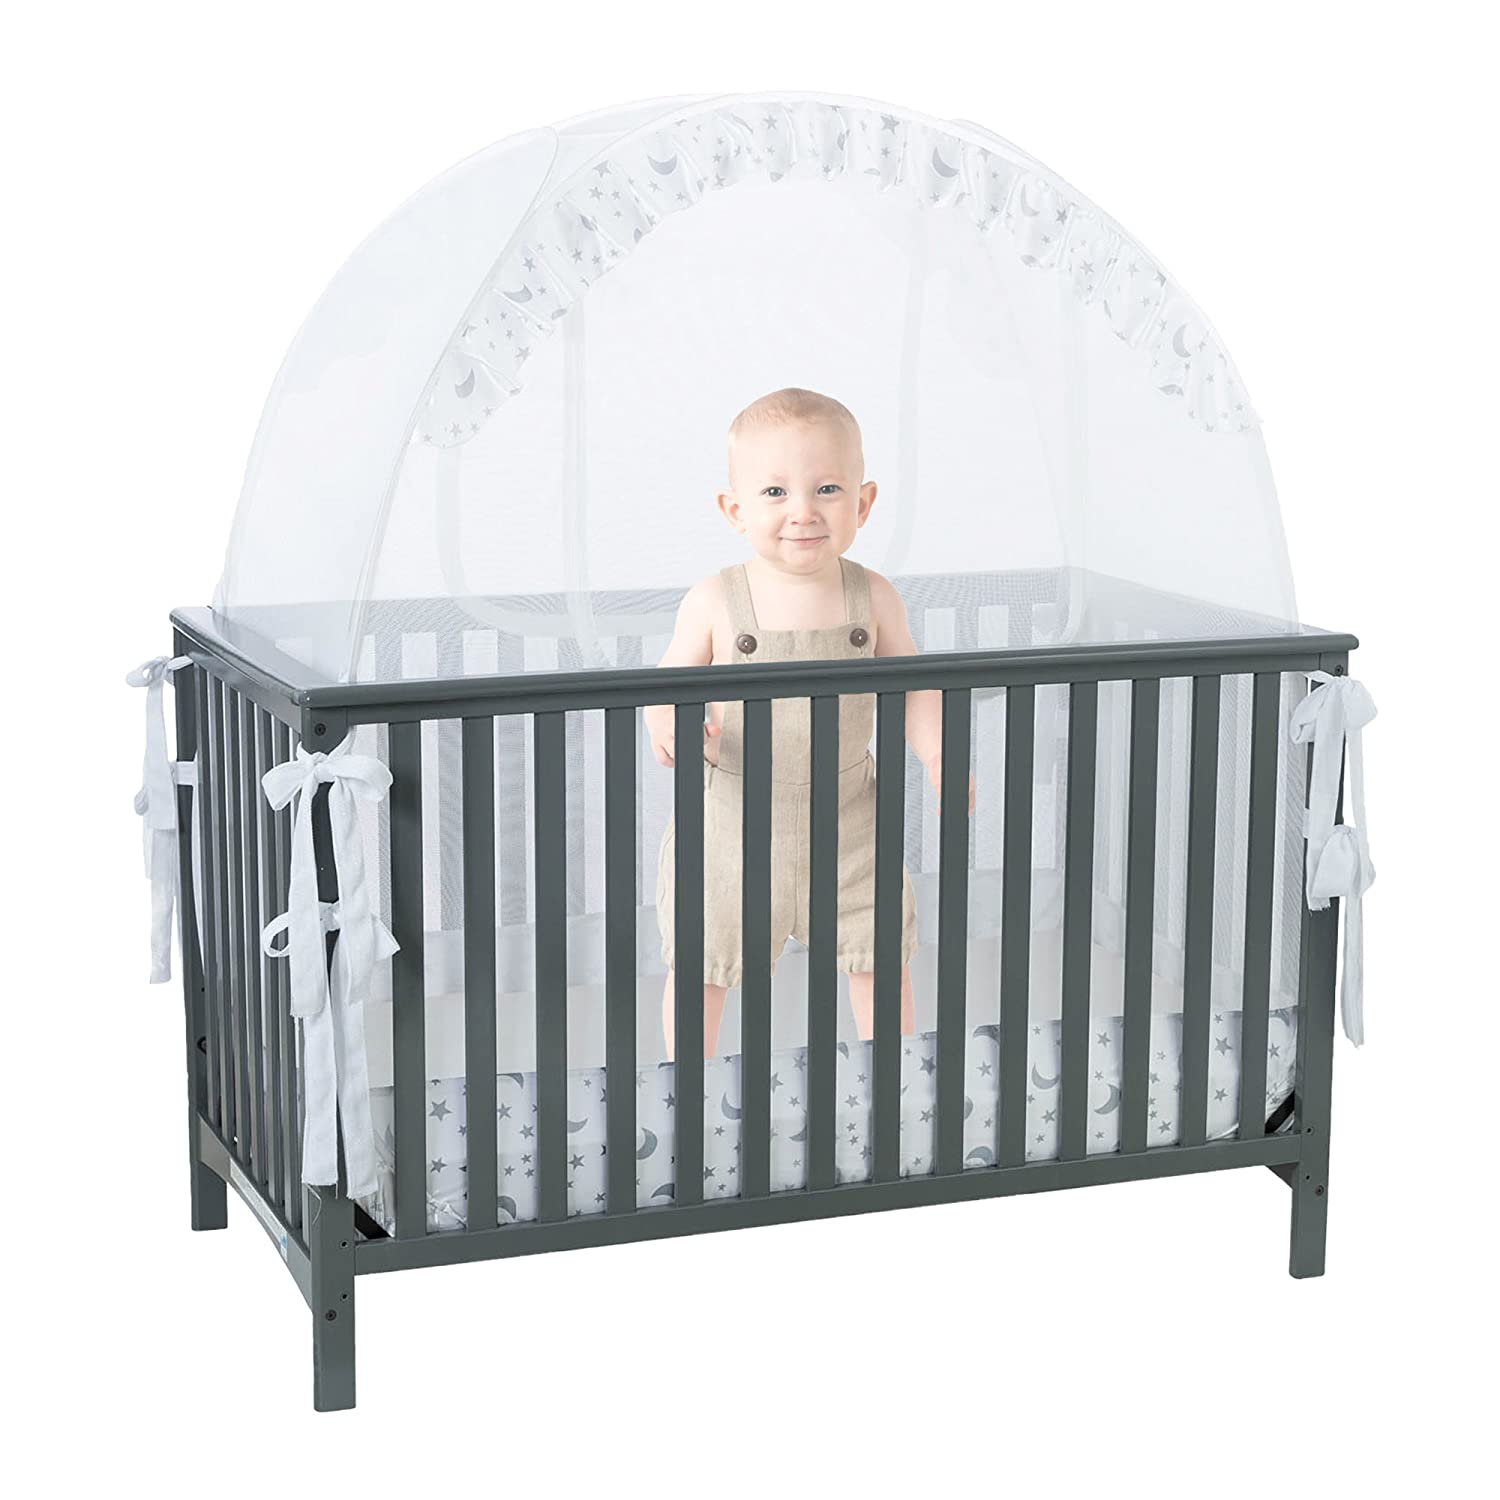 SEE THROUGH MESH TOP - Baby Crib Tent Safety Net Pop Up Canopy Cover 1st baby safety